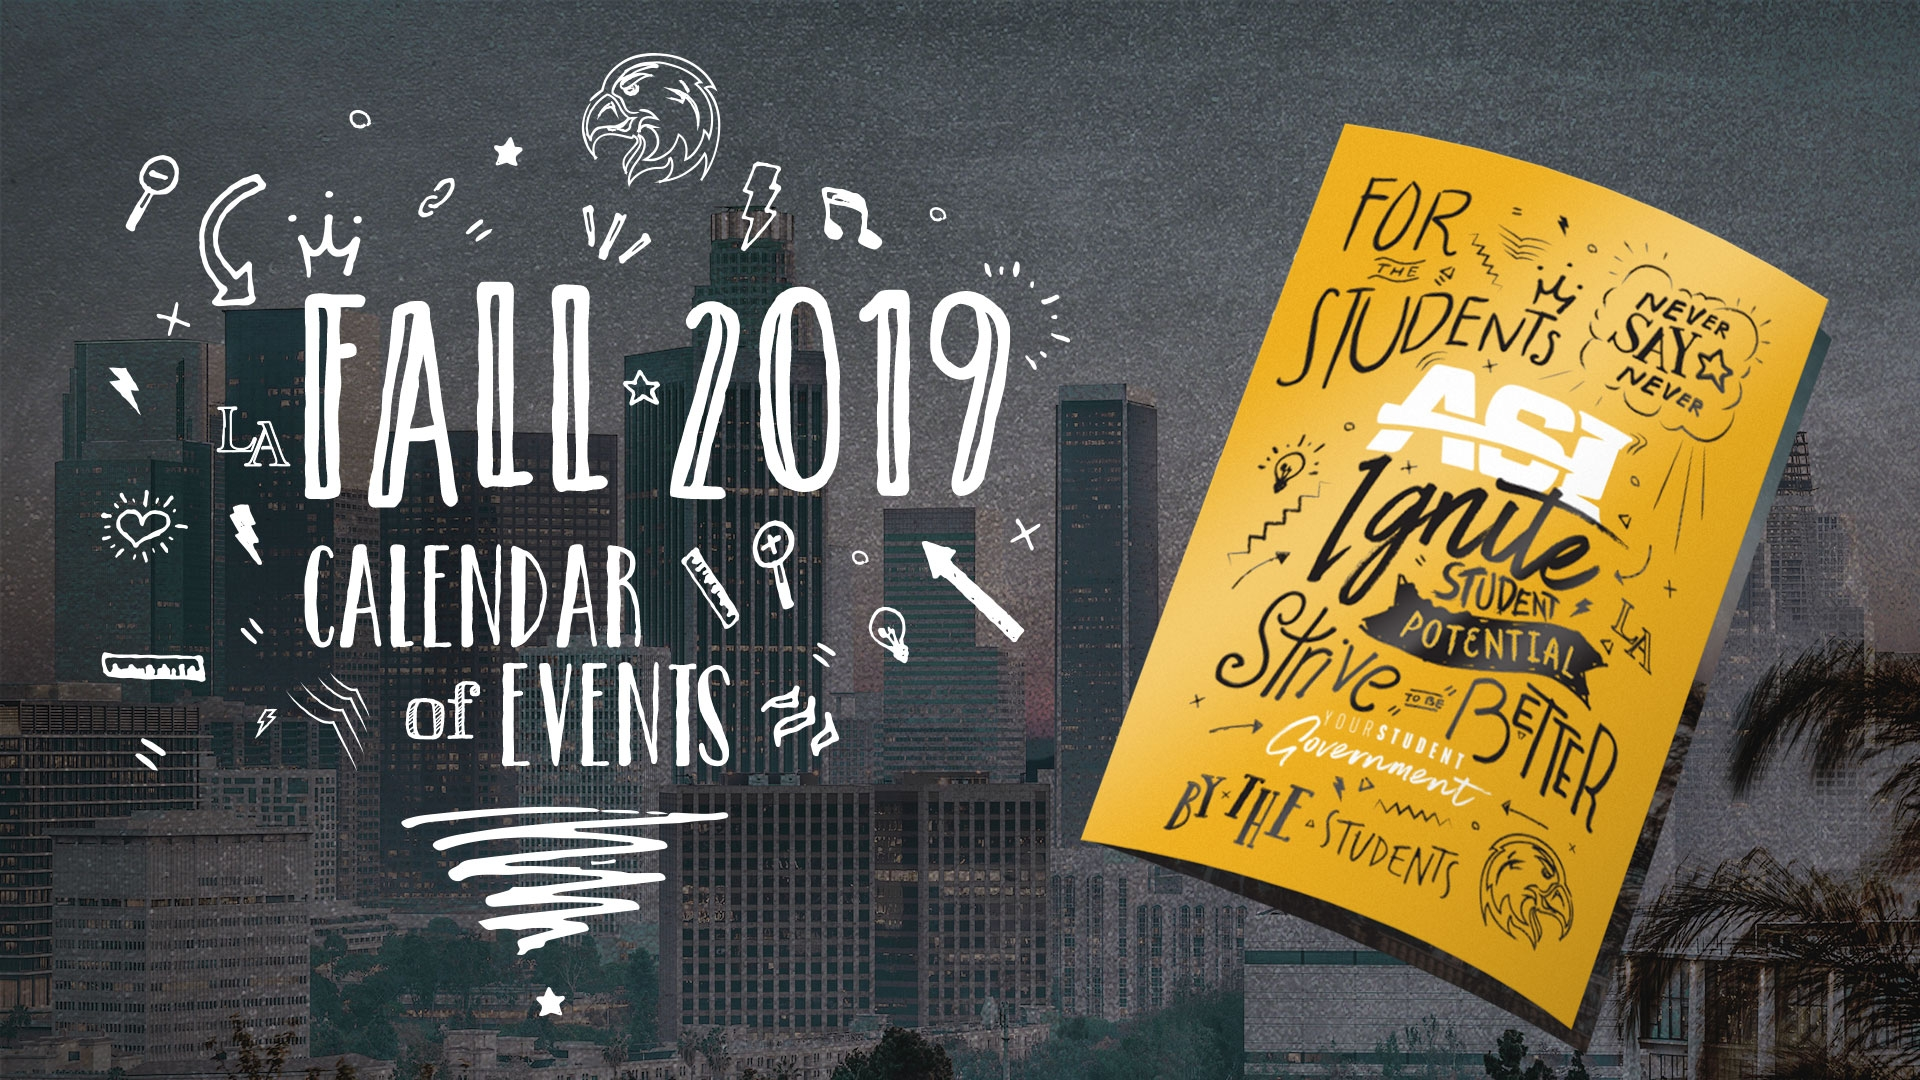 Fall 2019 Calendar of Events